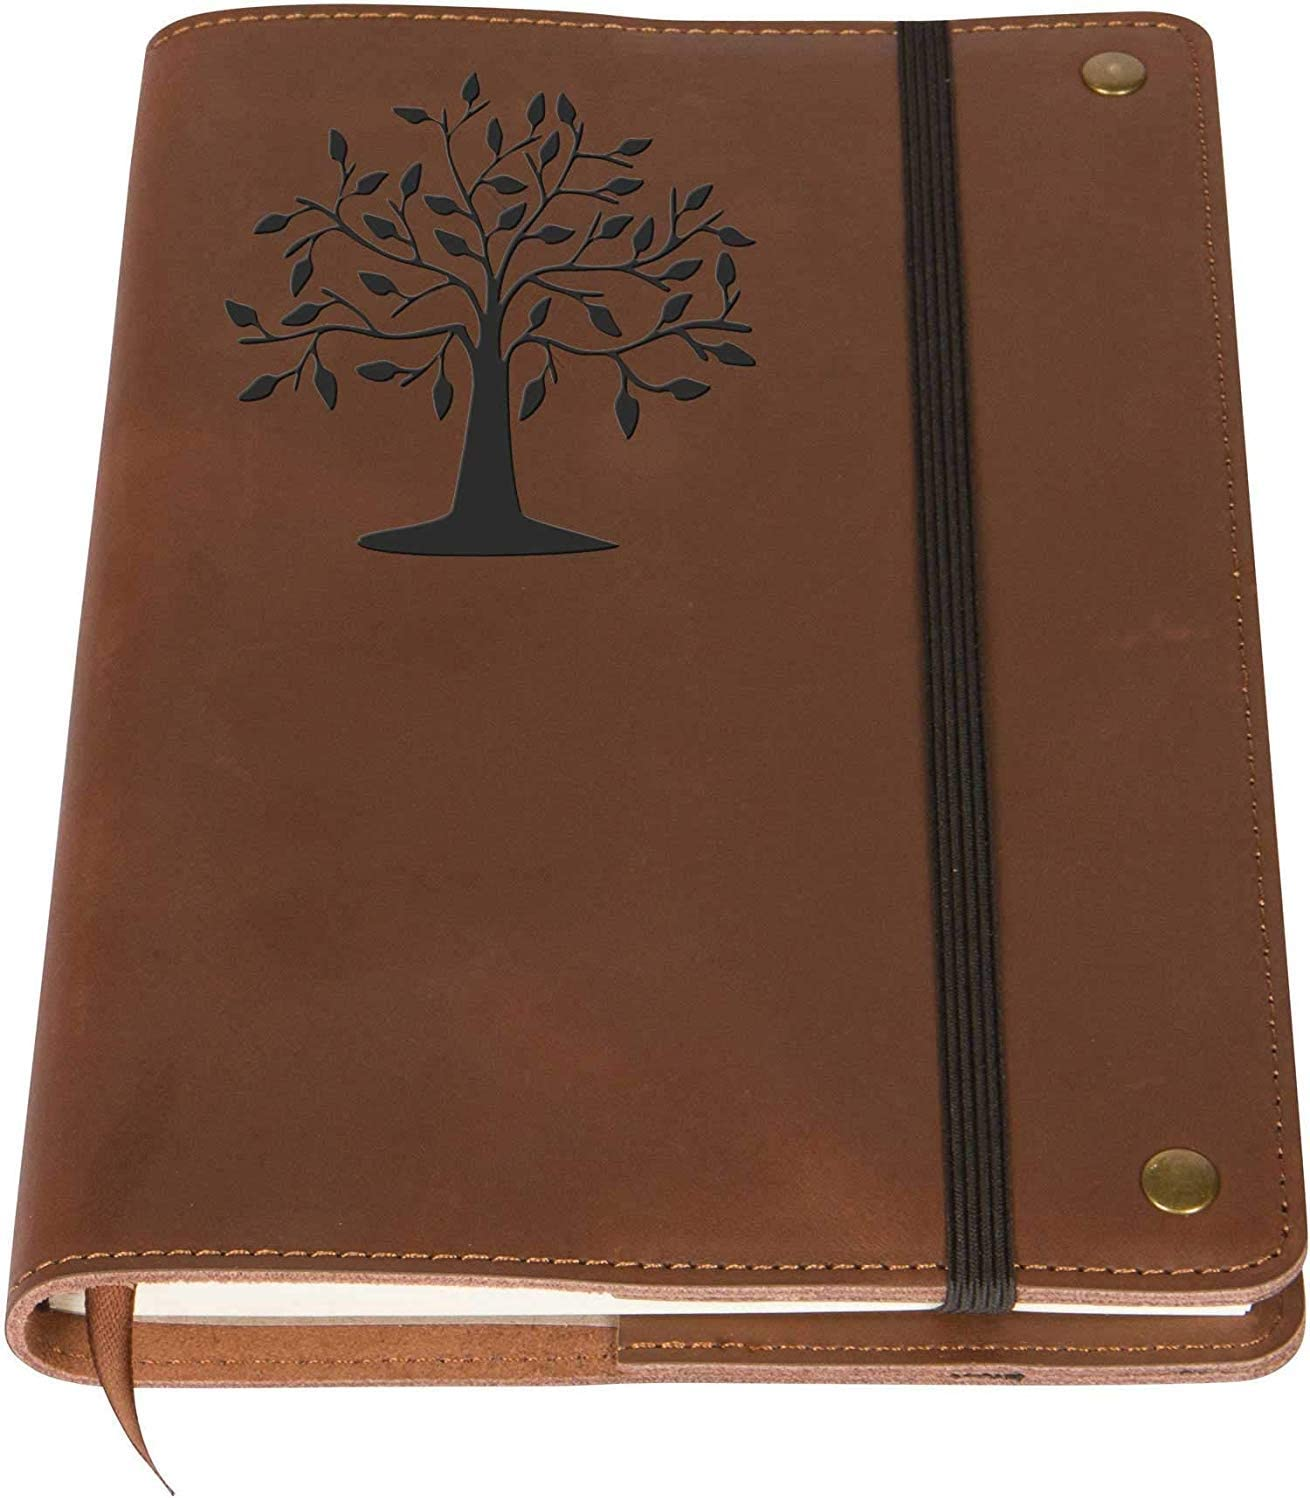 The Tree Of Life - Real Leather Journal Notebook, 6 x 9 Inch, 200 Lined Pages Travel Personal Diary, Quality College Ruled Notebooks and Journals To Write In for Men and Women from The Amazing Office